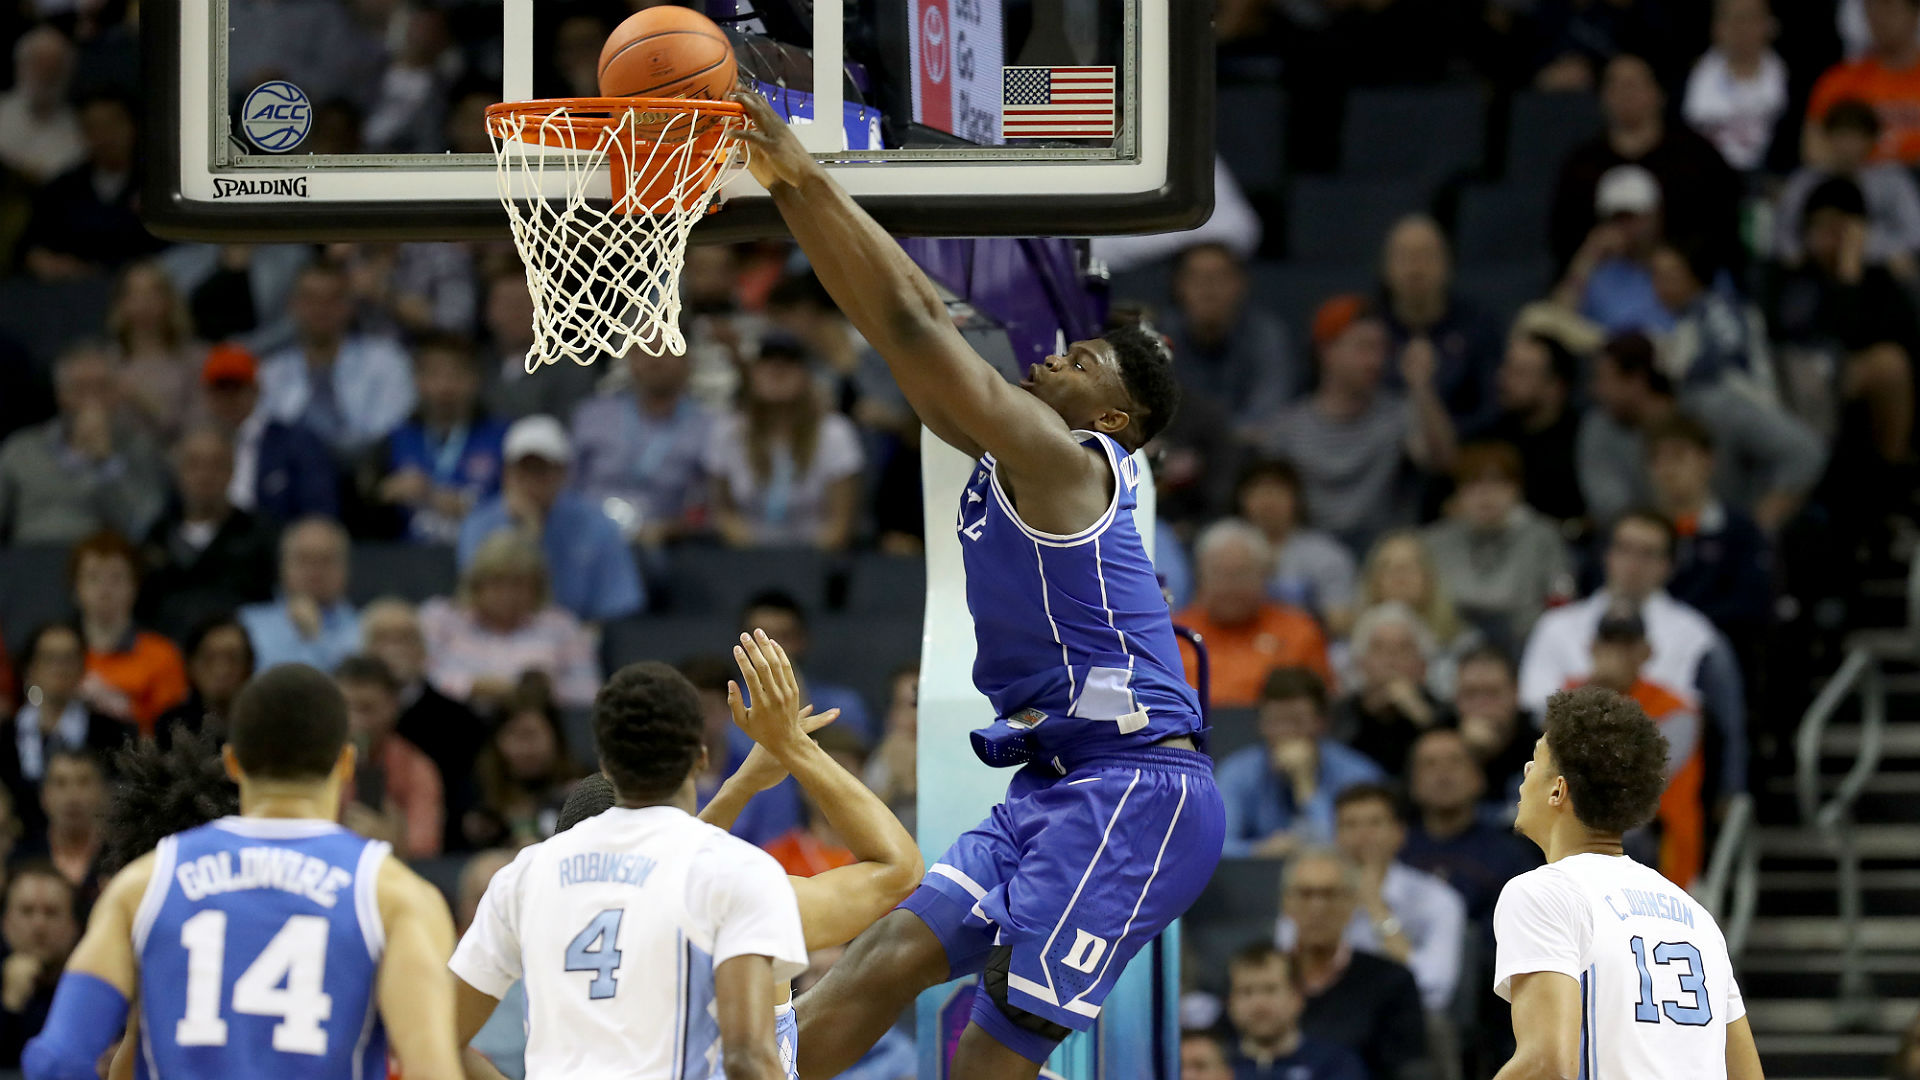 Zion Williamson registered a game-high 31 points and grabbed 11 rebounds to inspire Duke on Friday.